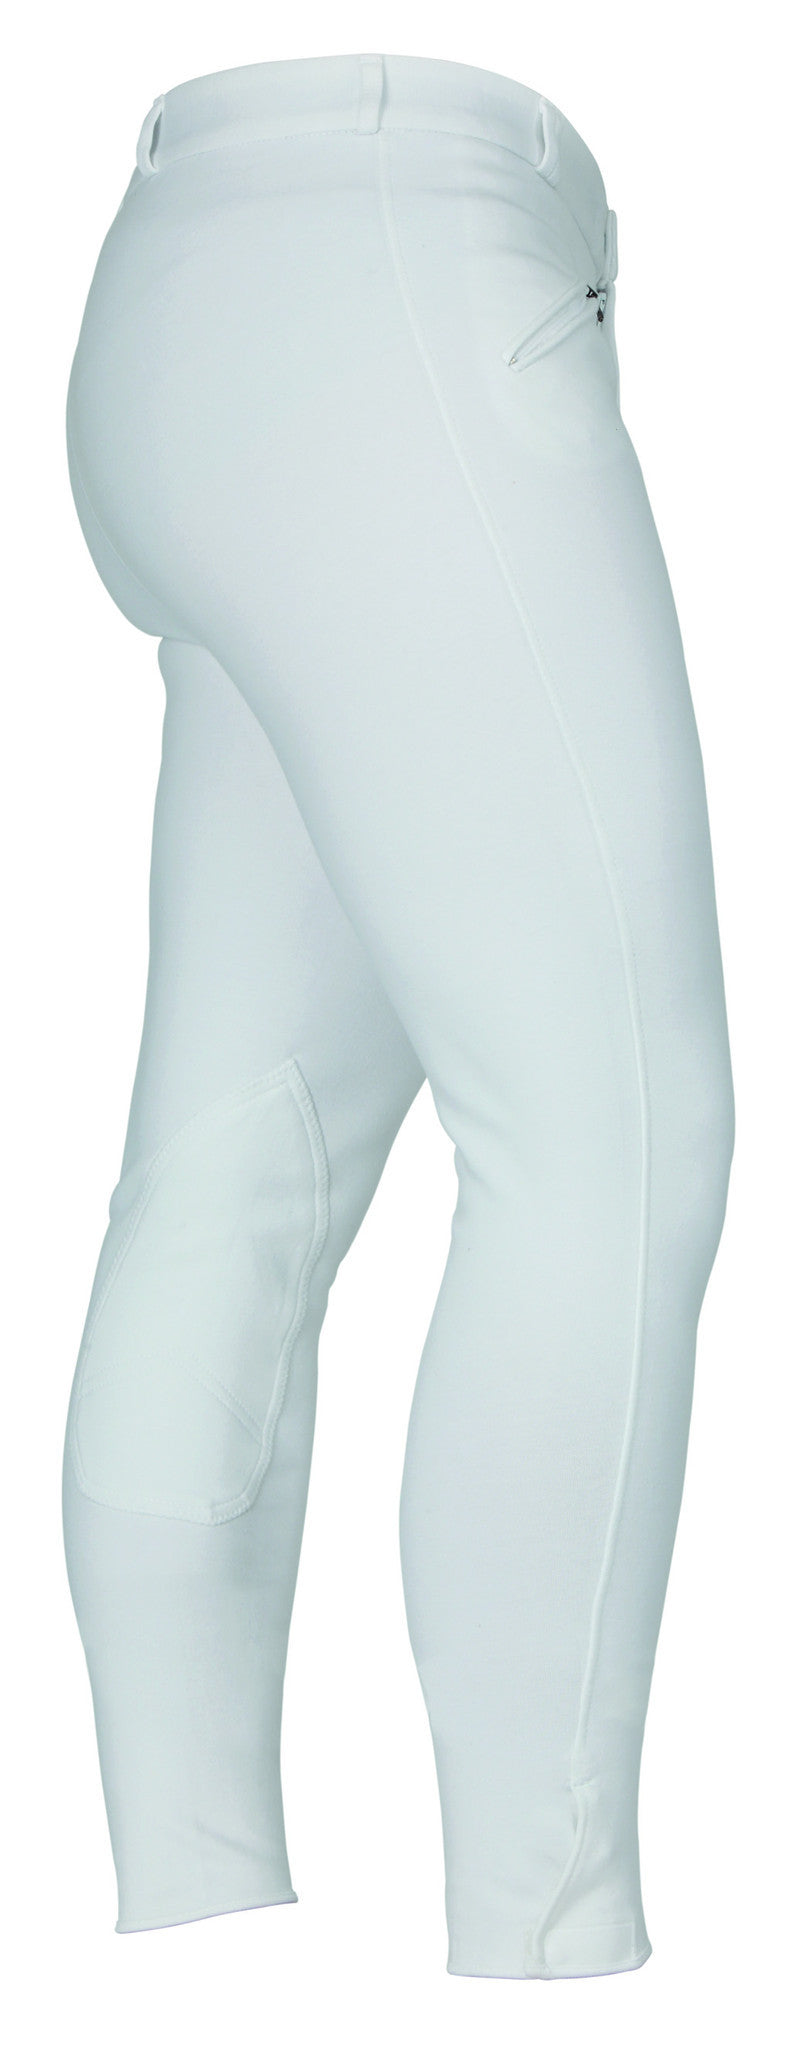 SaddleHugger Breeches - Gents